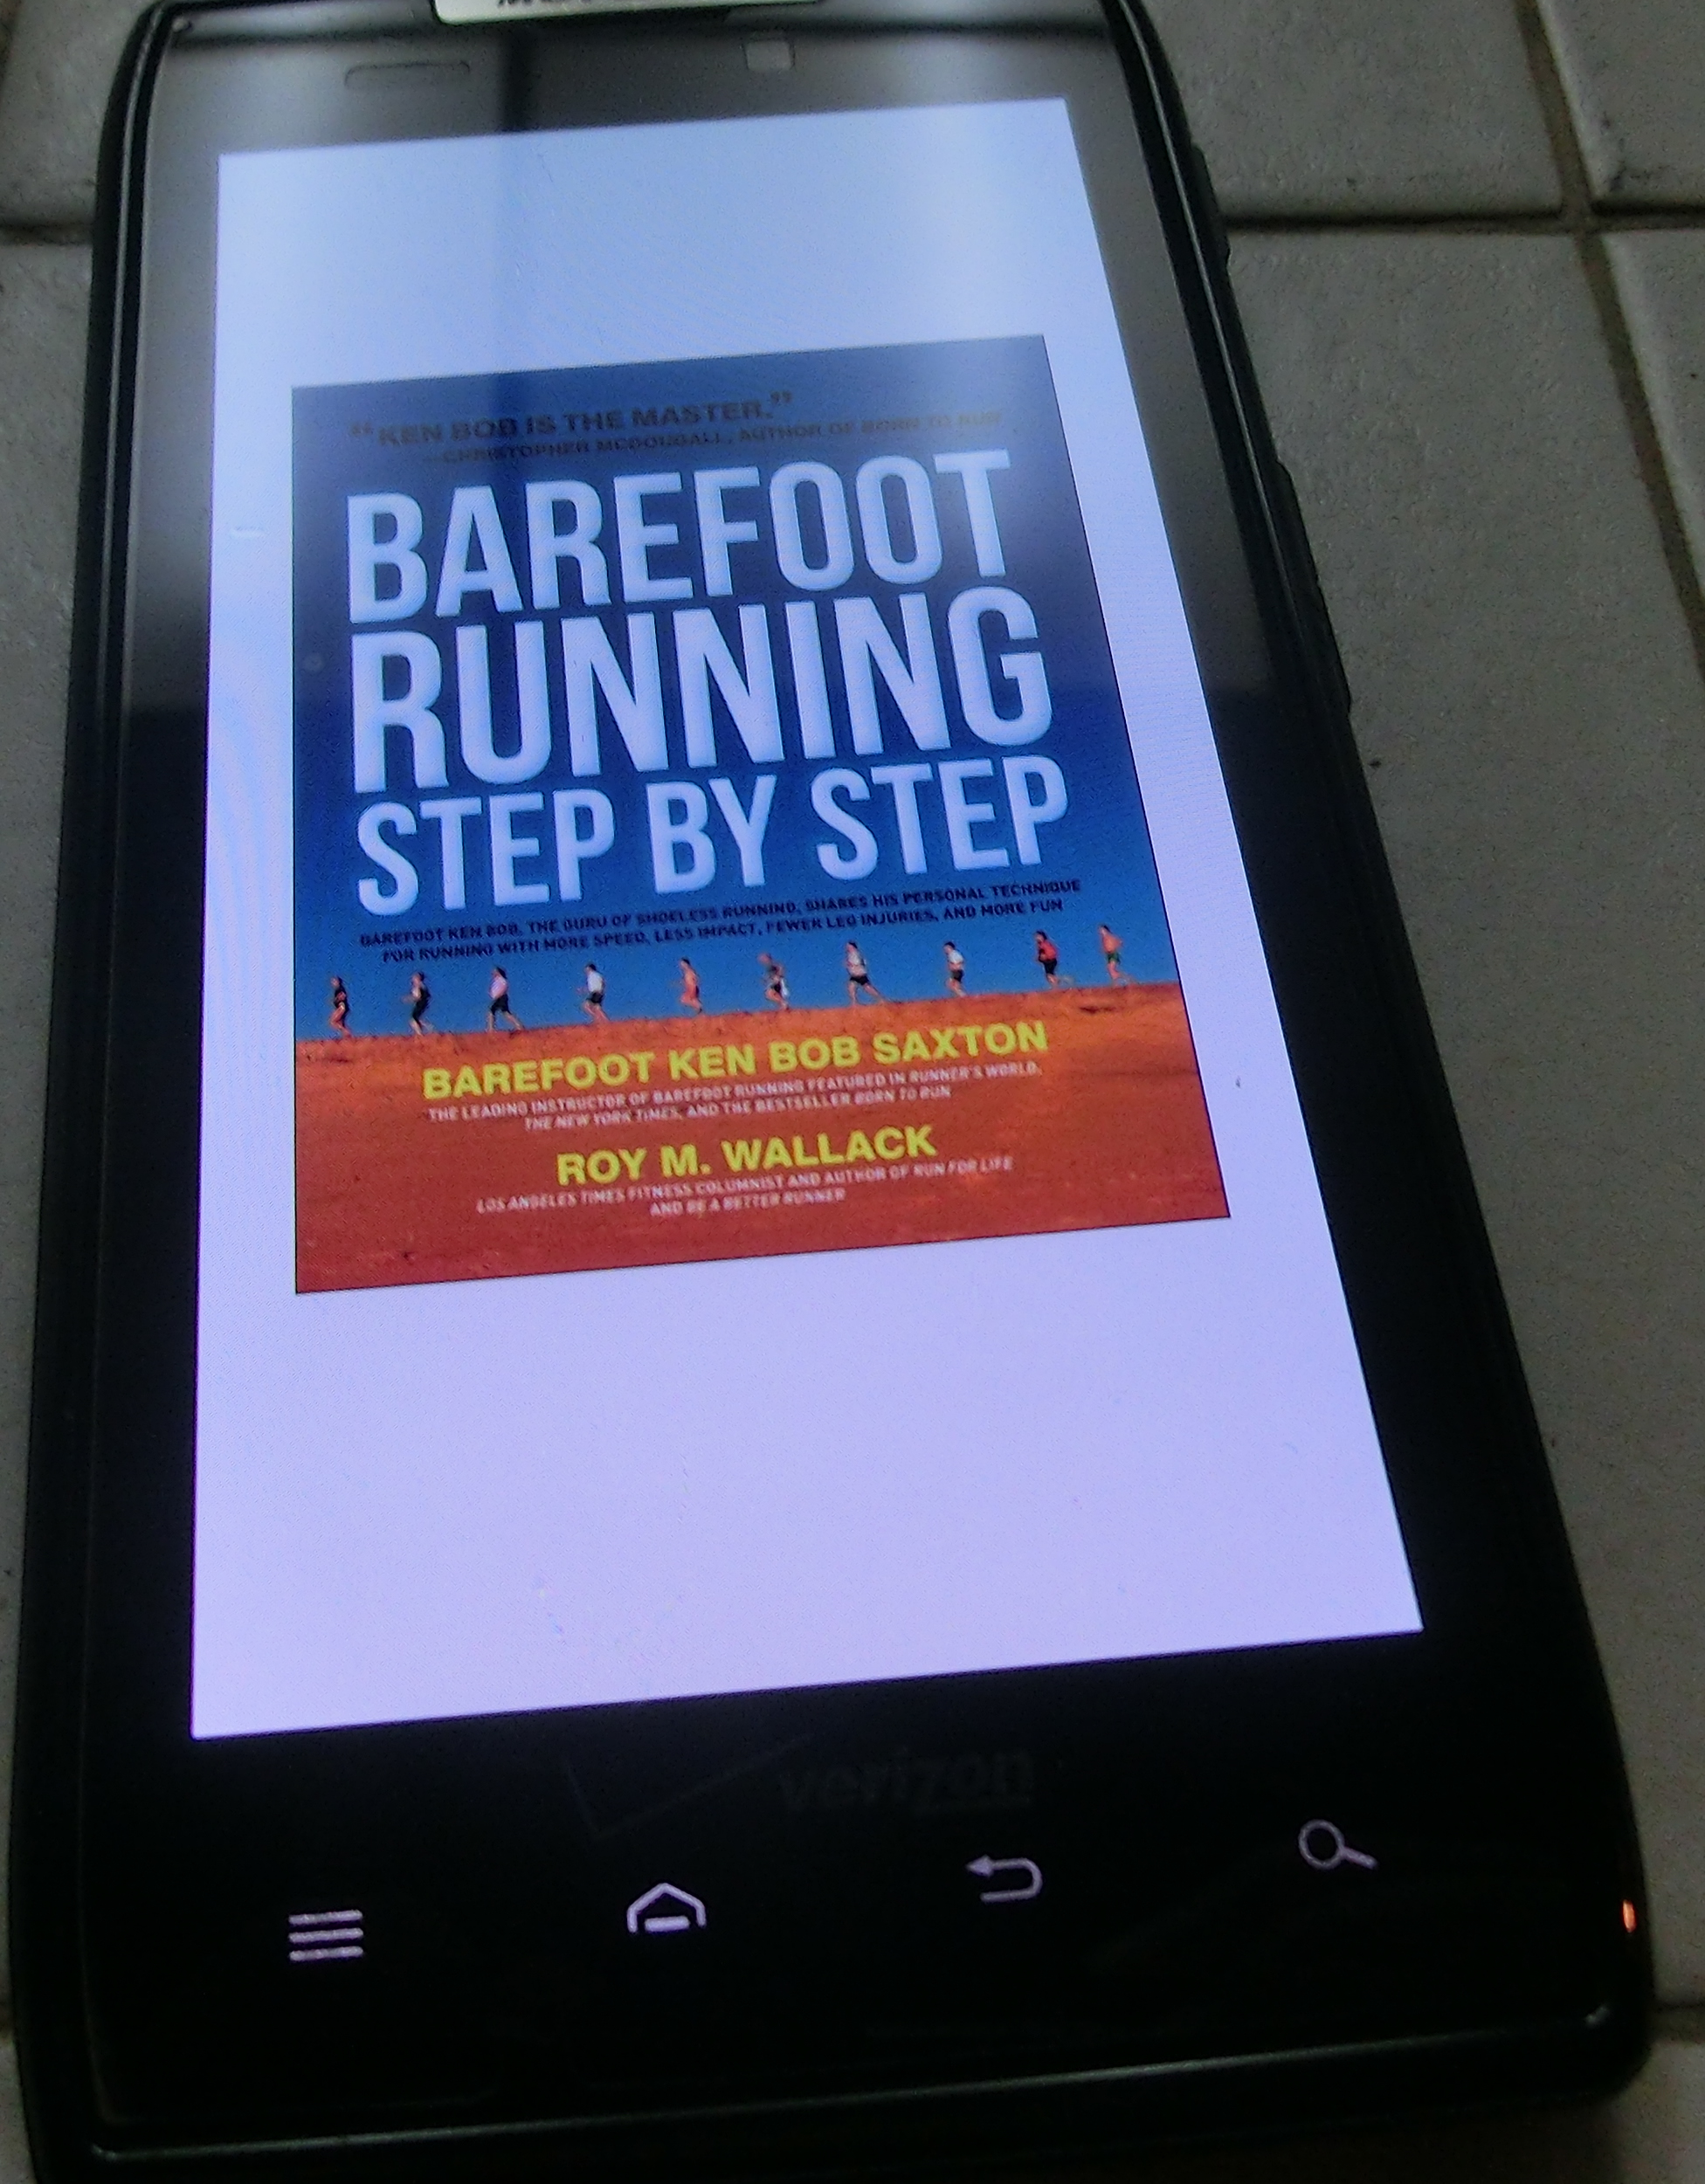 Barefoot Running Step by Step - Kindle version on smart phone